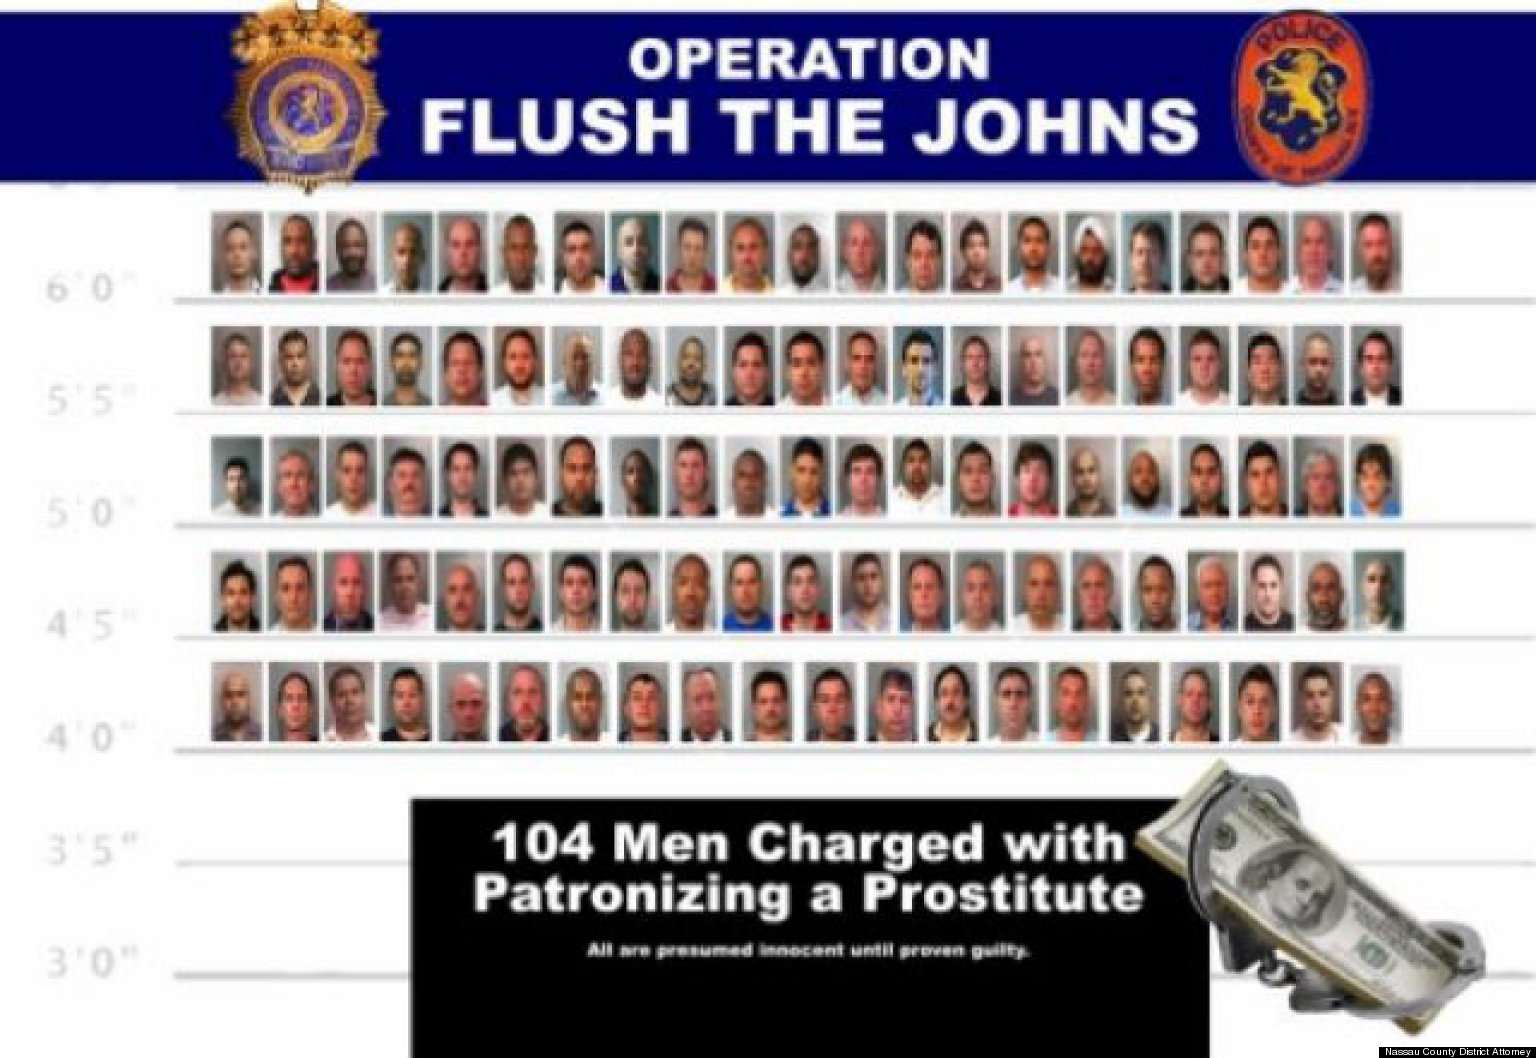 Long Island Prostitution Sting Operation Flush The Johns